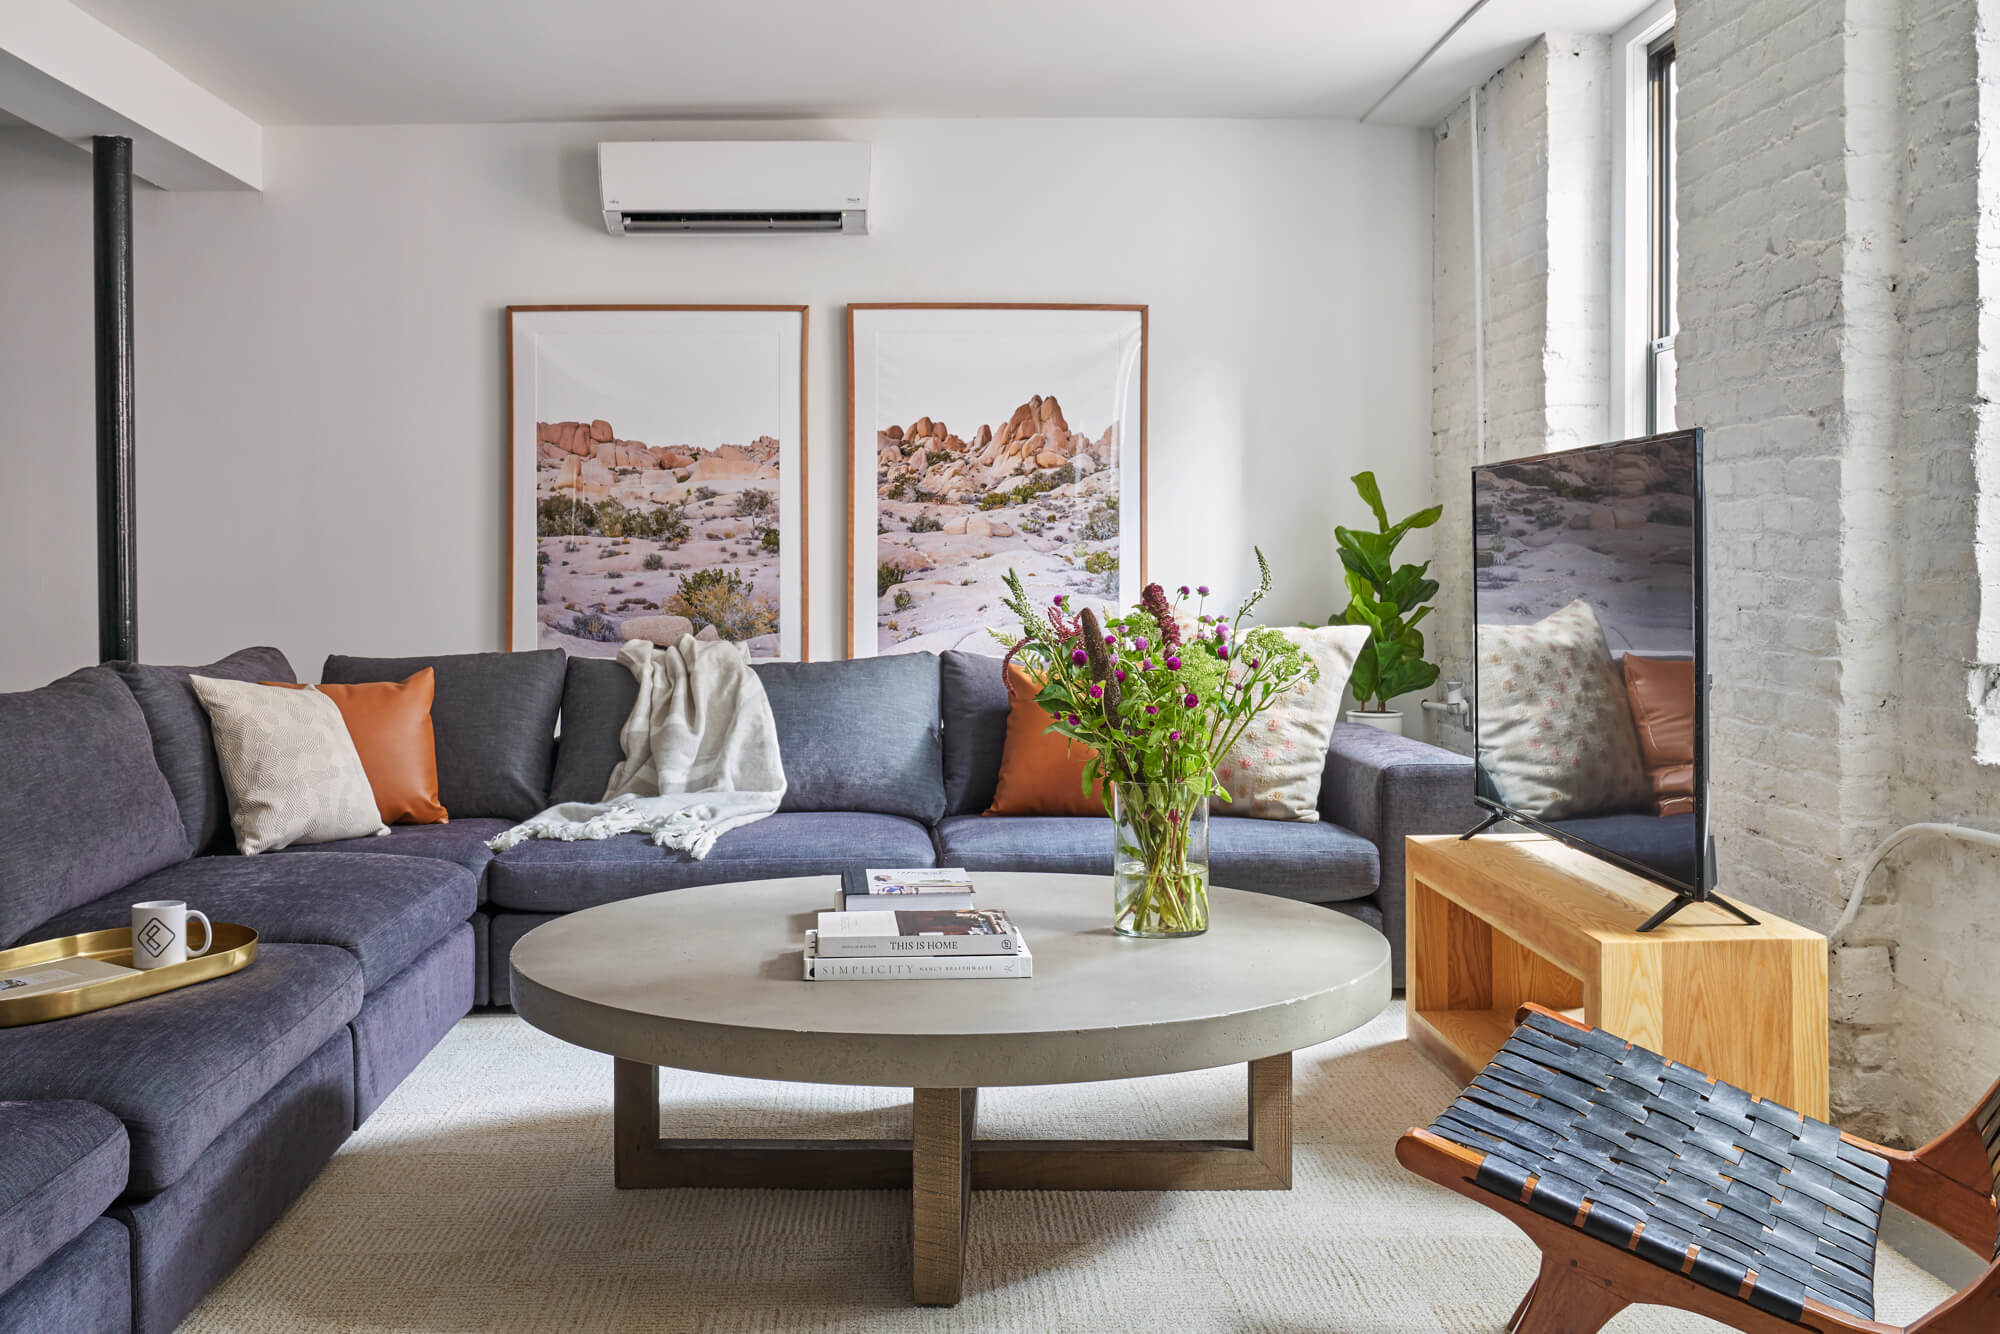 Choosing the right apartment color scheme